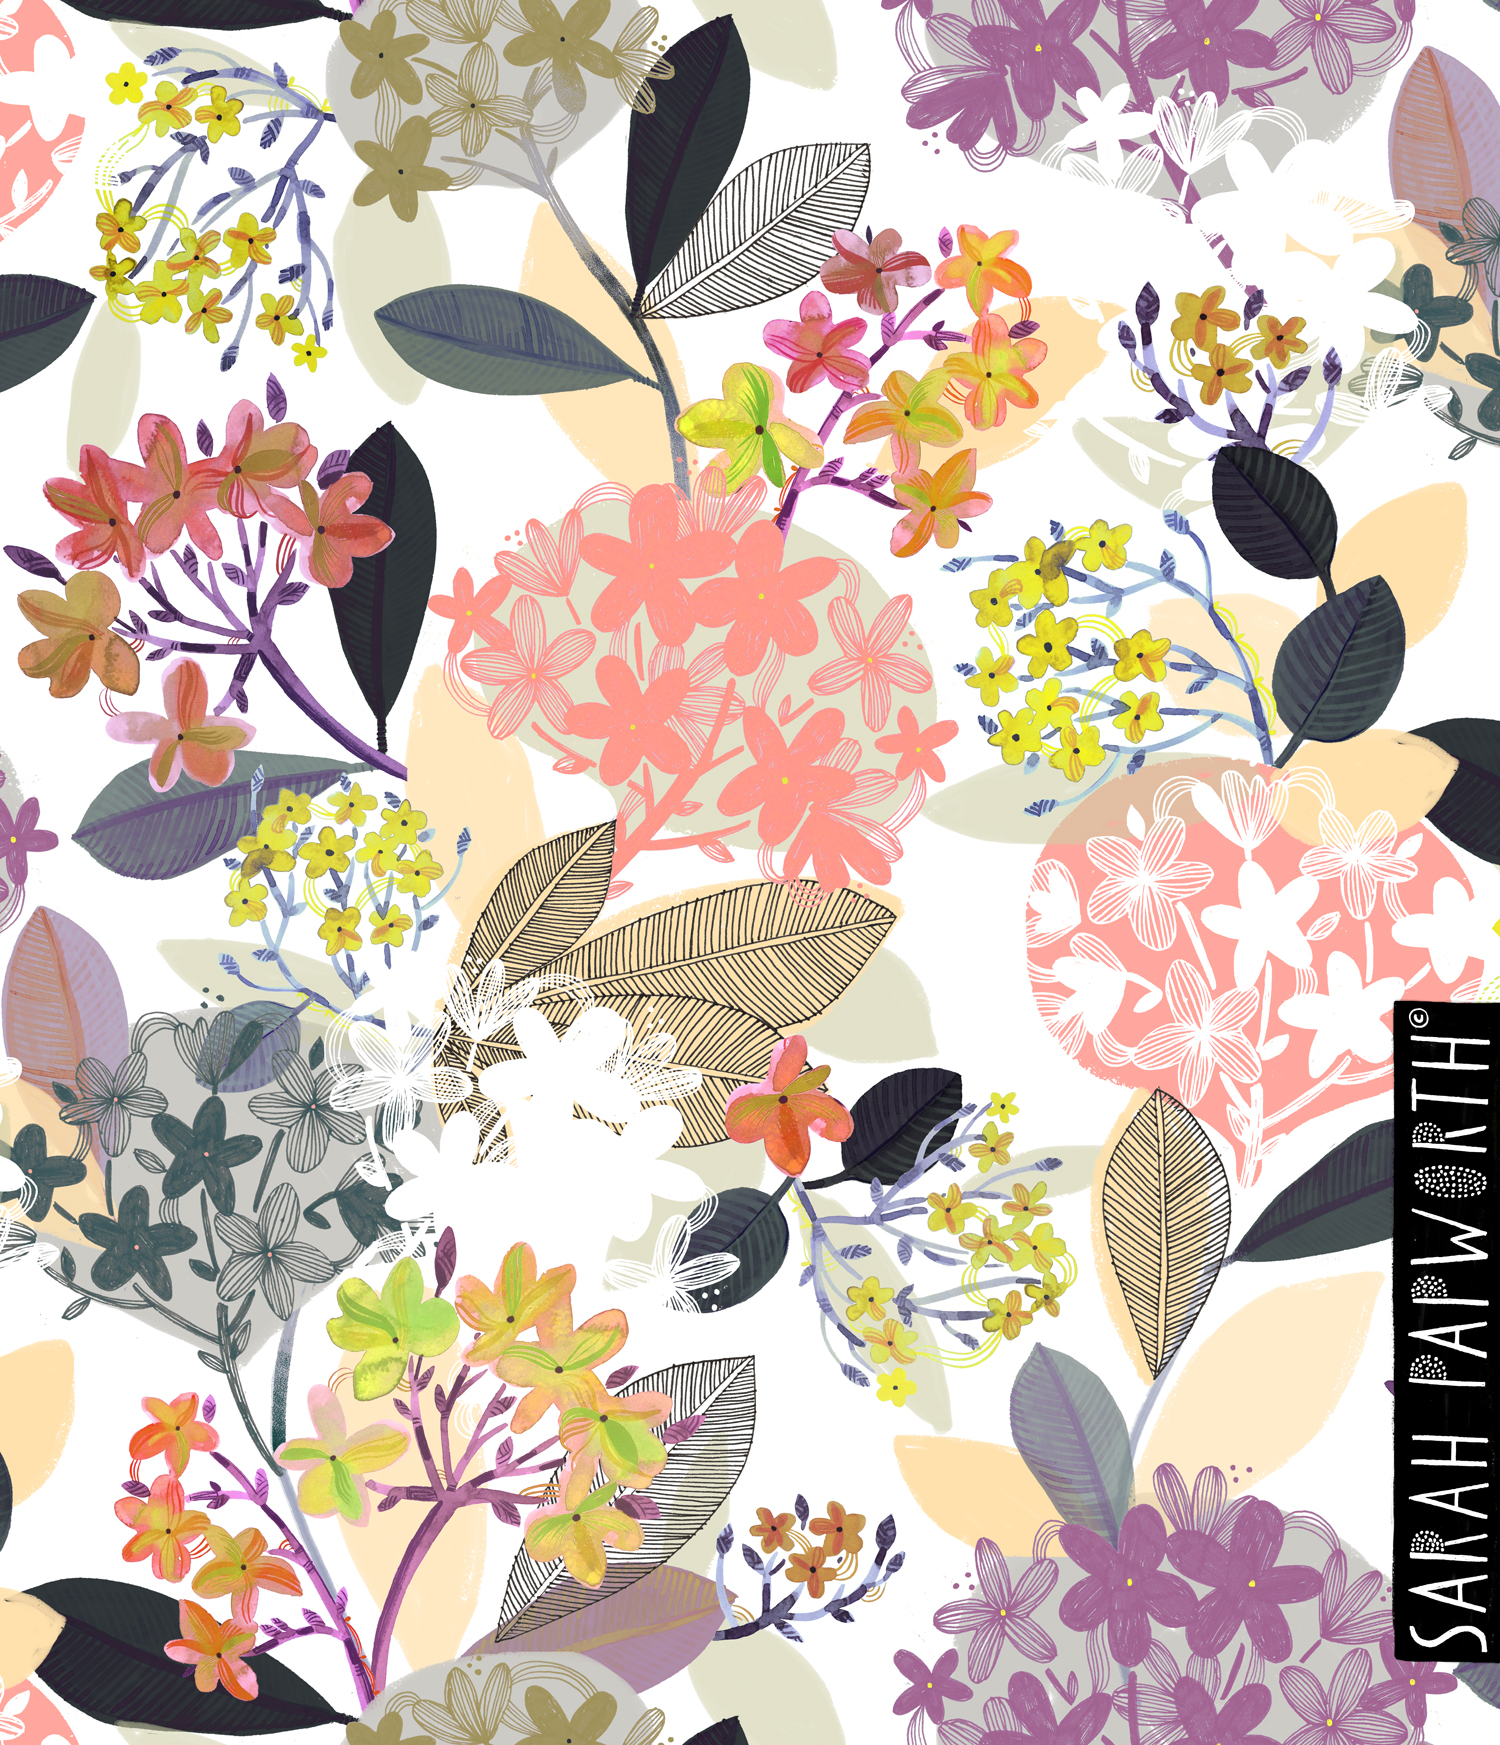 blossom repeat homeware furnishing wallpaper pattern floral print by sarah papworth design.jpg